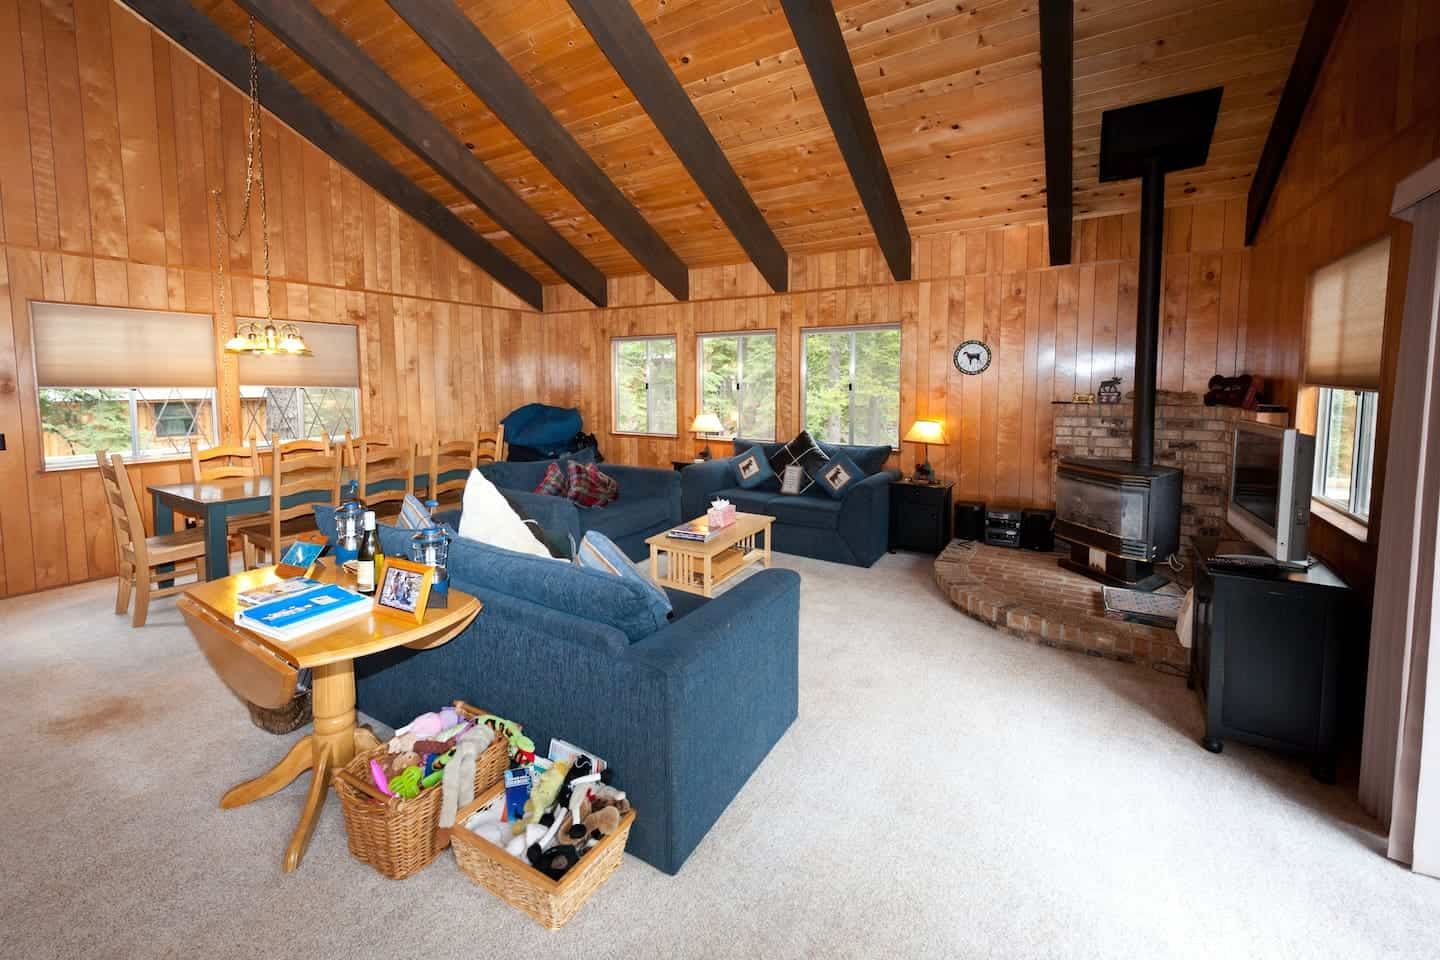 Image of Airbnb rental in Lake Tahoe